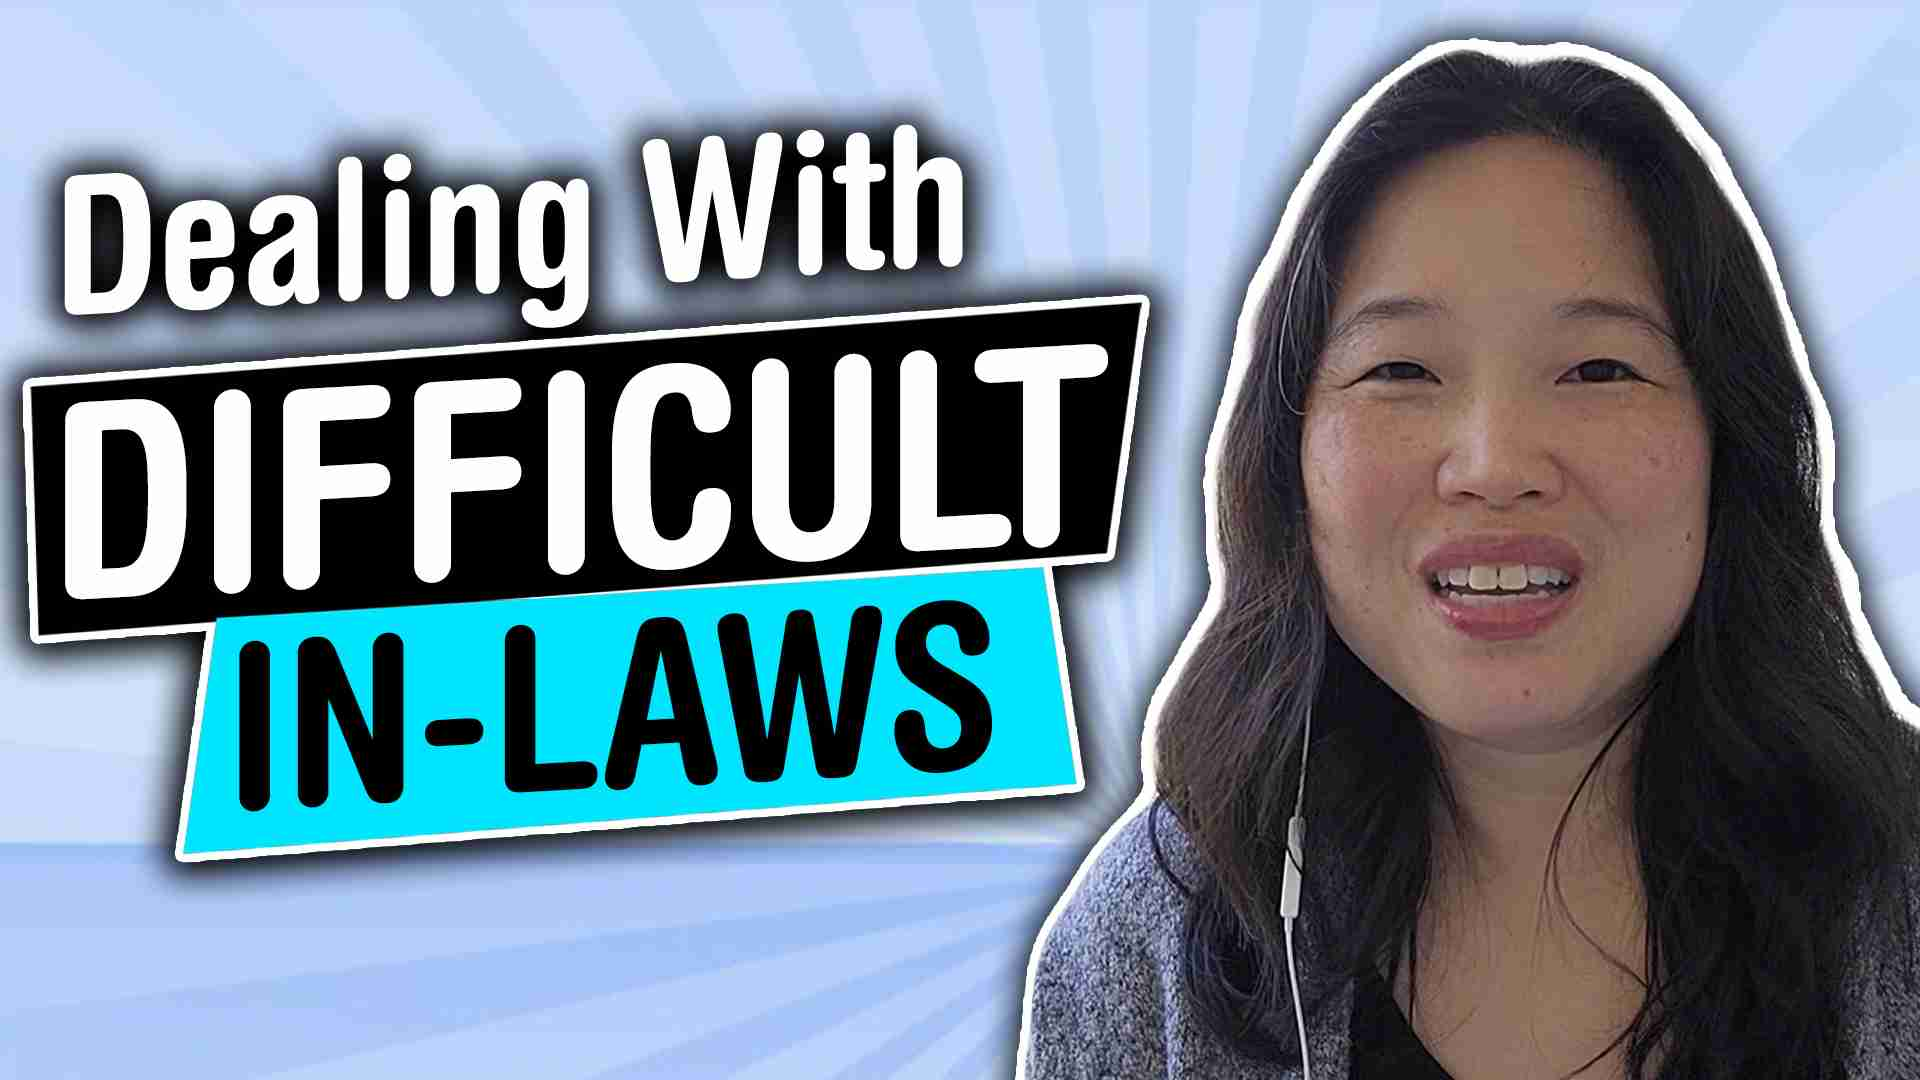 Dealing with difficult in laws from an asian american perspective